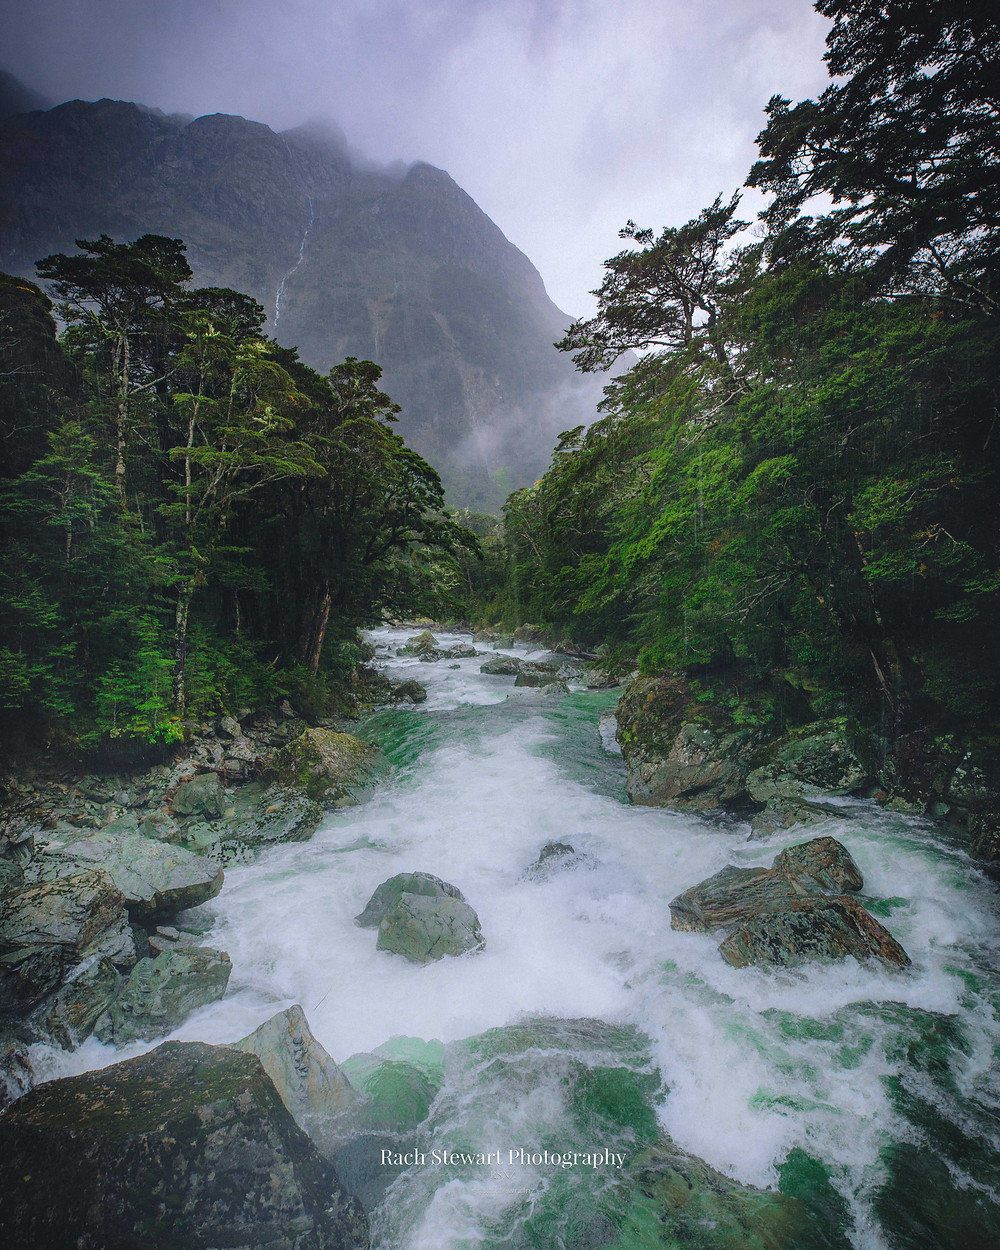 View over the river at the end of the Routeburn track